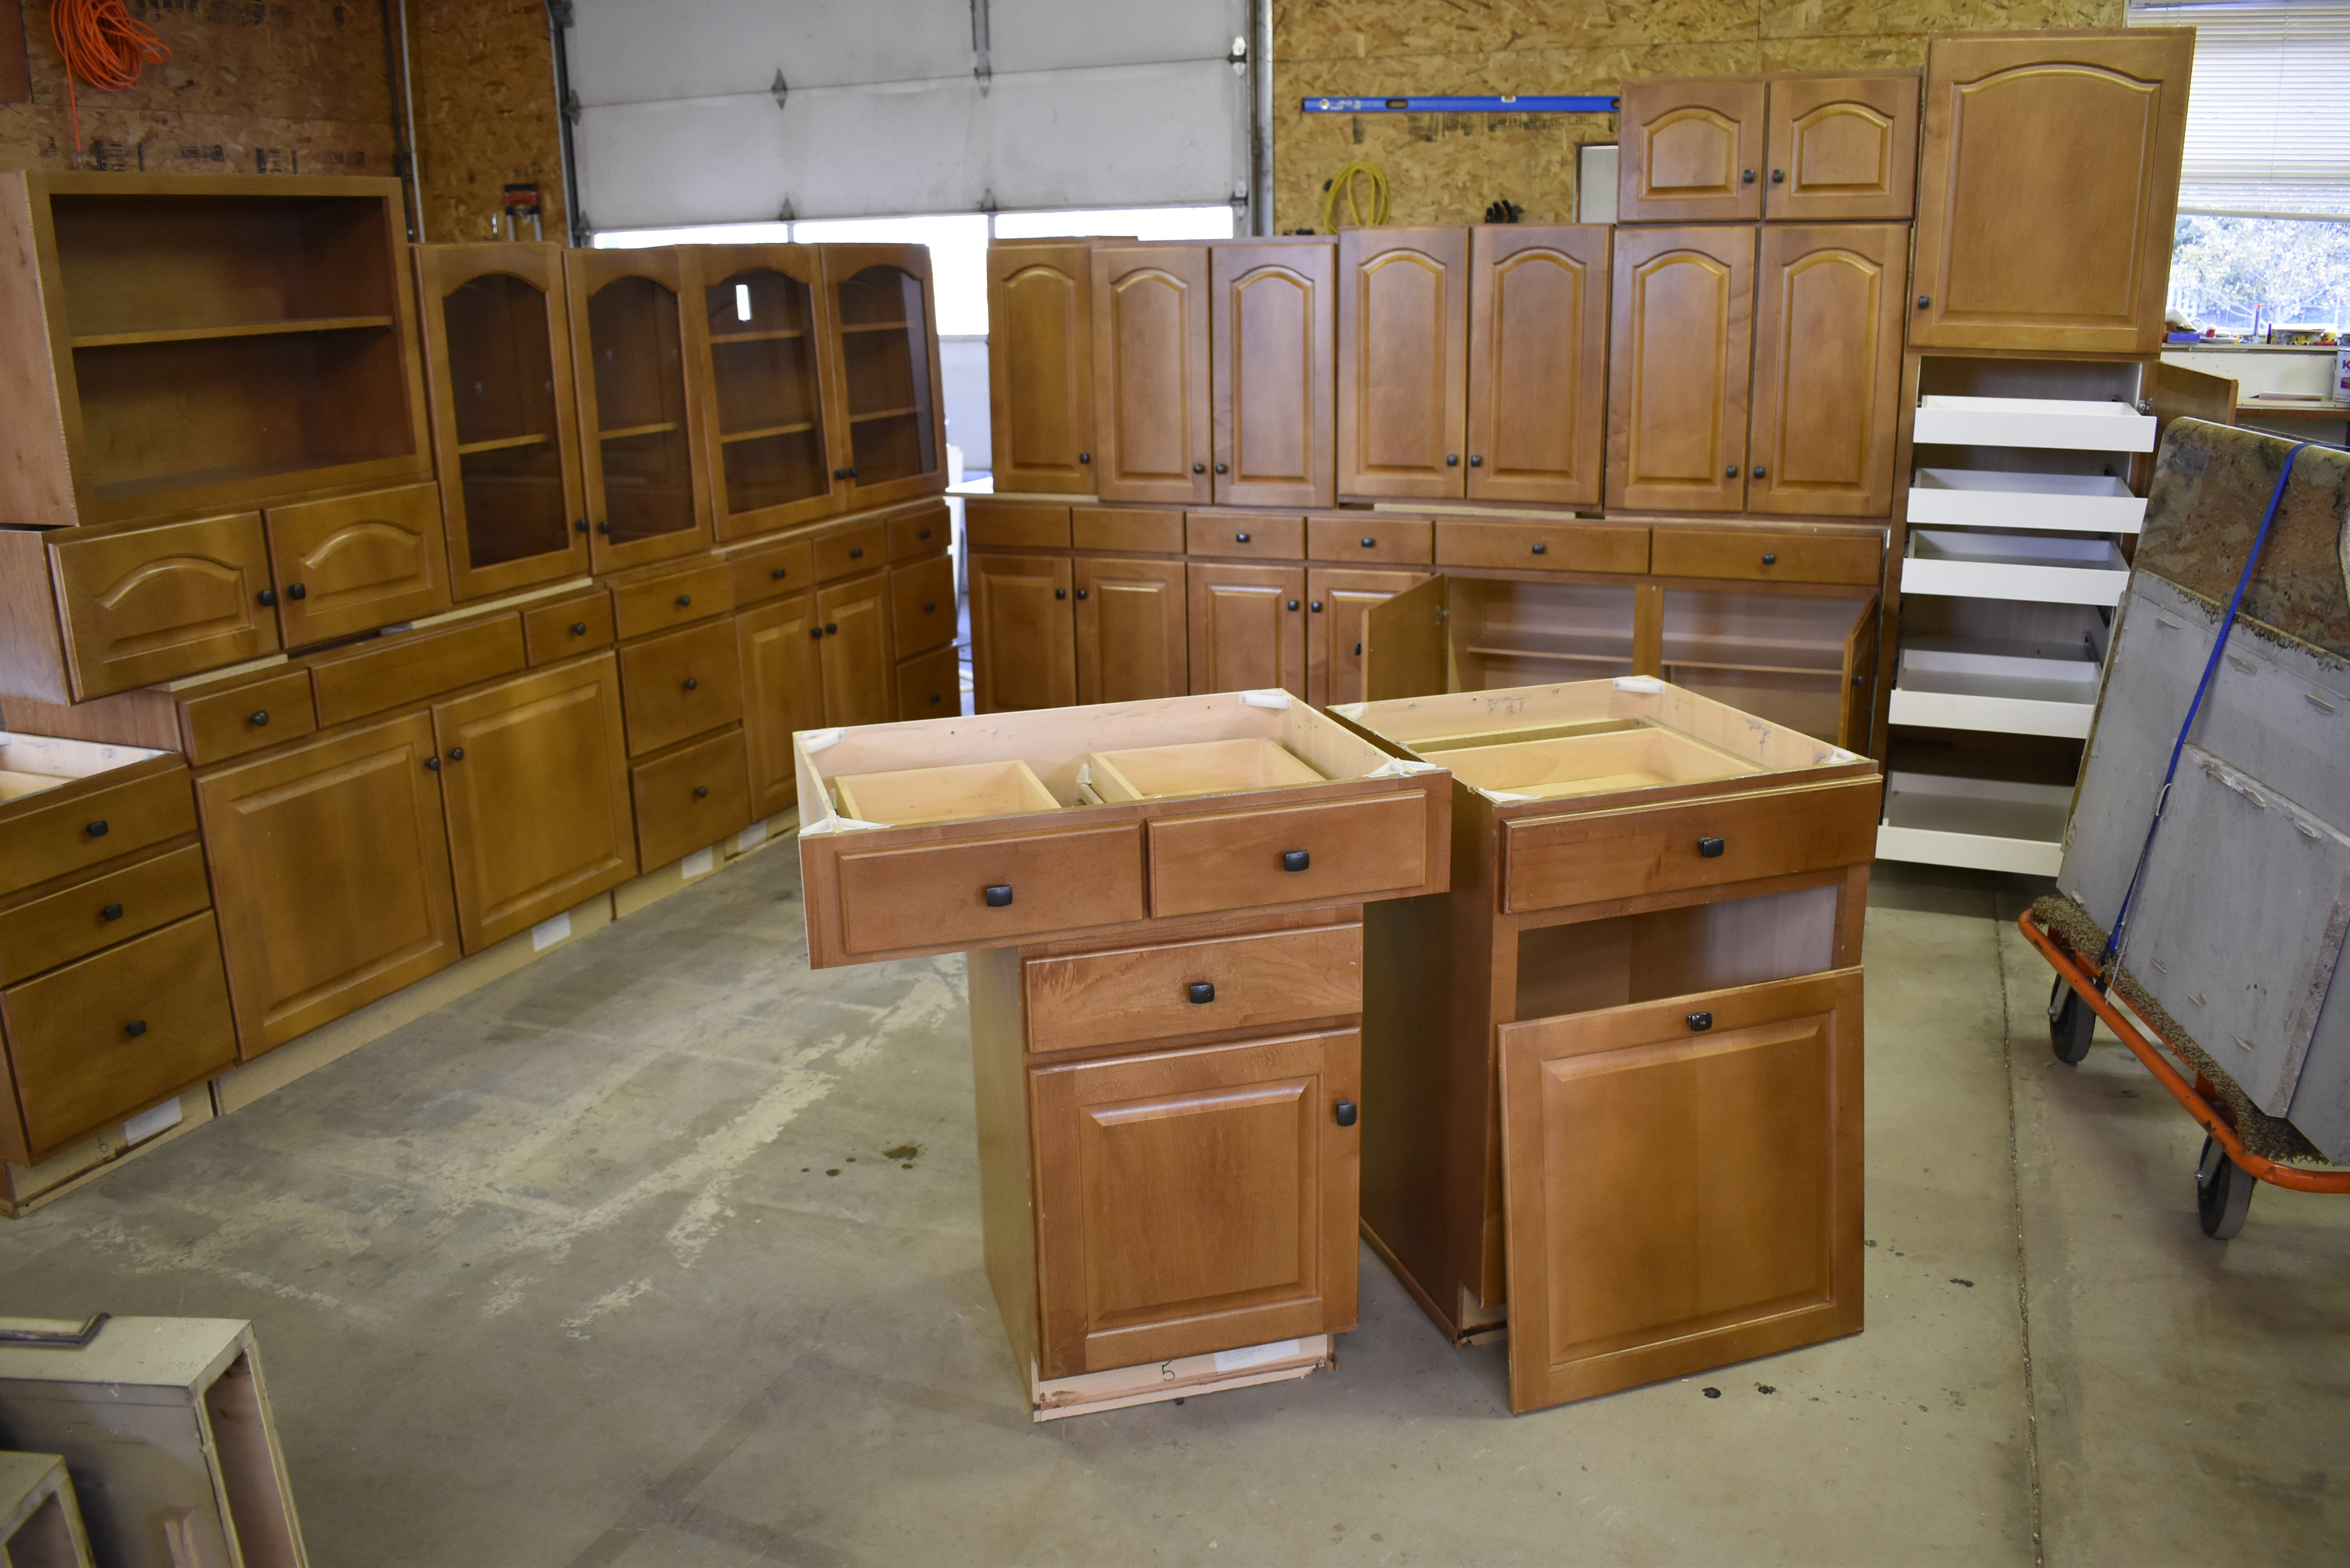 Large raised panel kitchen cabinet set w rollout trays and glass doors